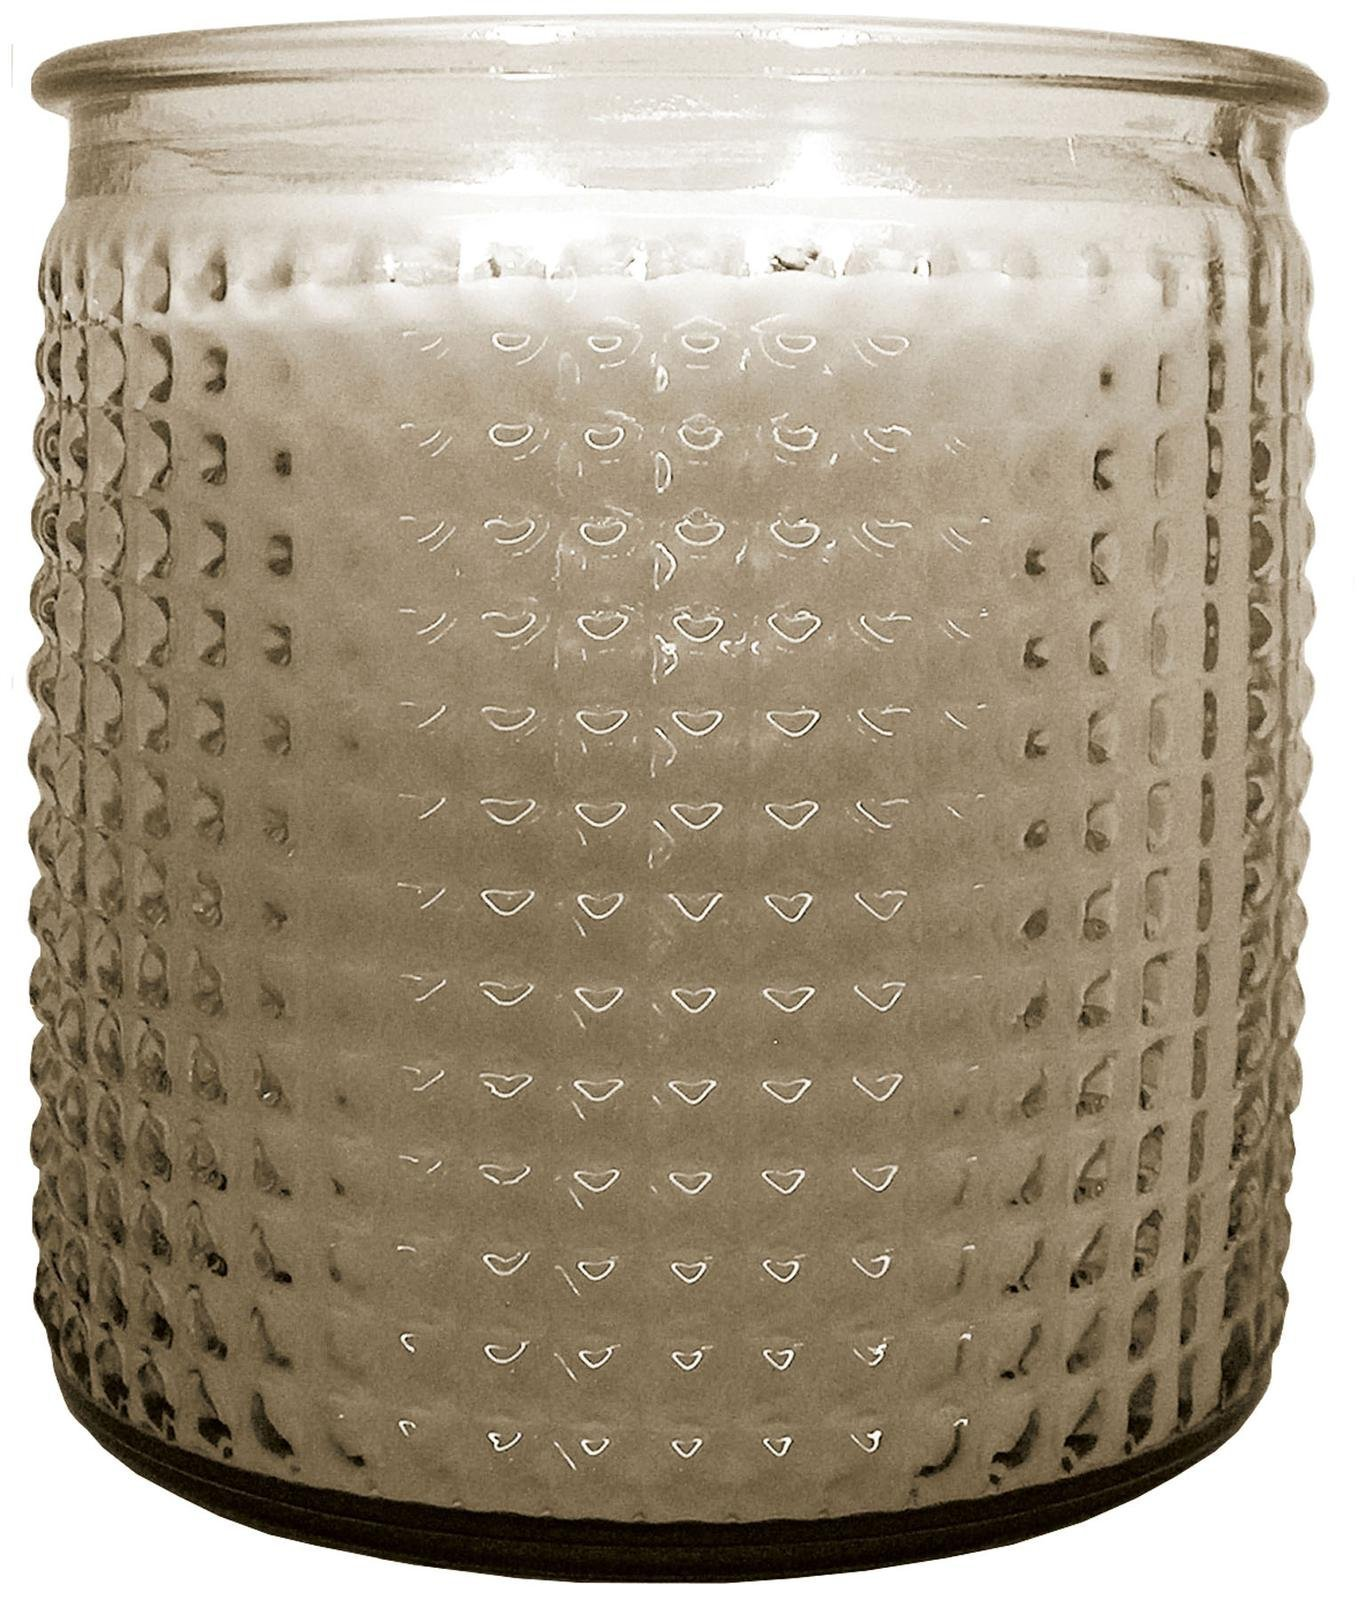 Hillhouse Naturals Fresh Linen 2 Wick Candle, 15 Ounce - LNGL2 by Hillhouse Naturals